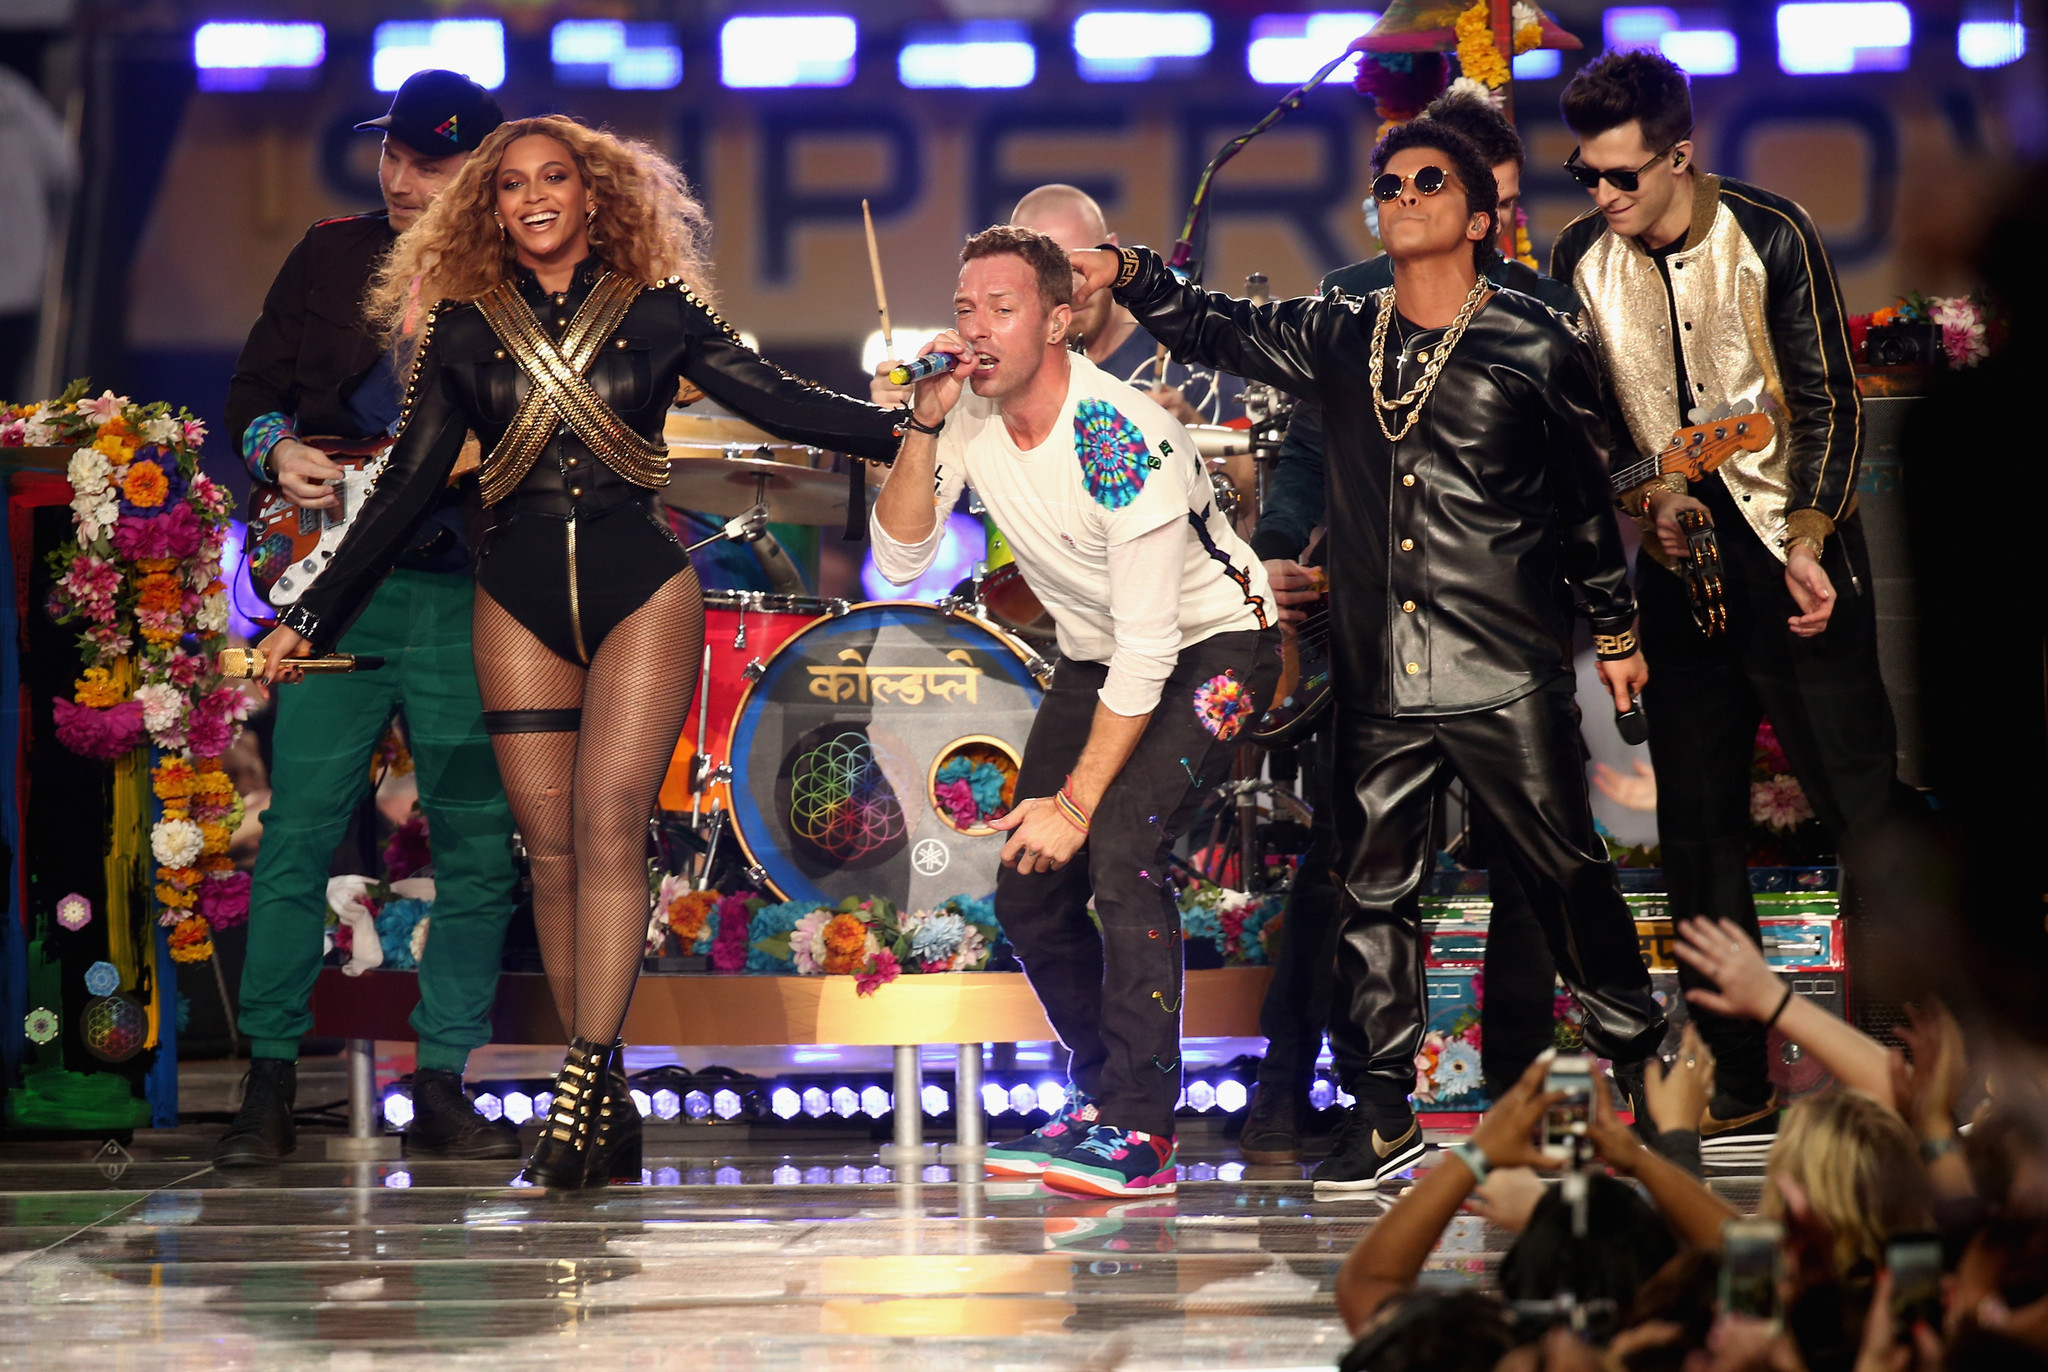 Beyoncé performs new single Formation at Super Bowl 50 Half Time Show with Coldplay and Bruno Mars